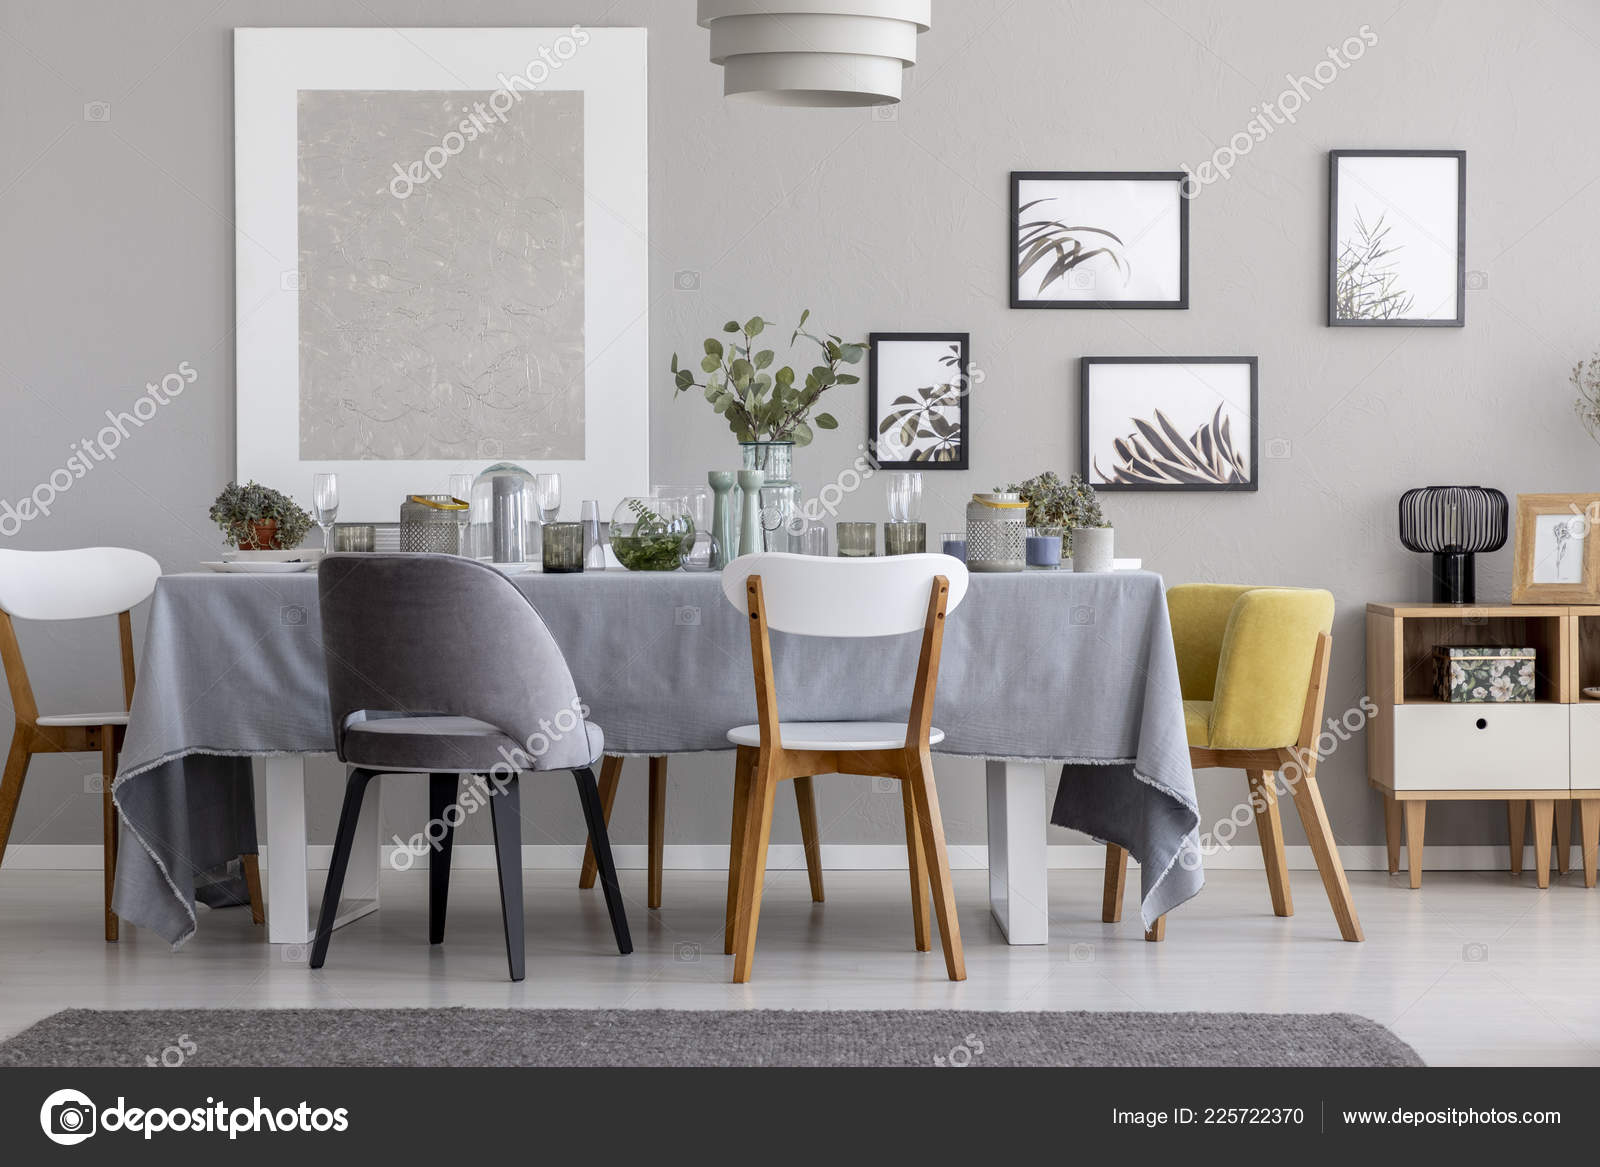 Grey And Yellow Chair White Grey Yellow Chair Table Tableware Dining Room Interior